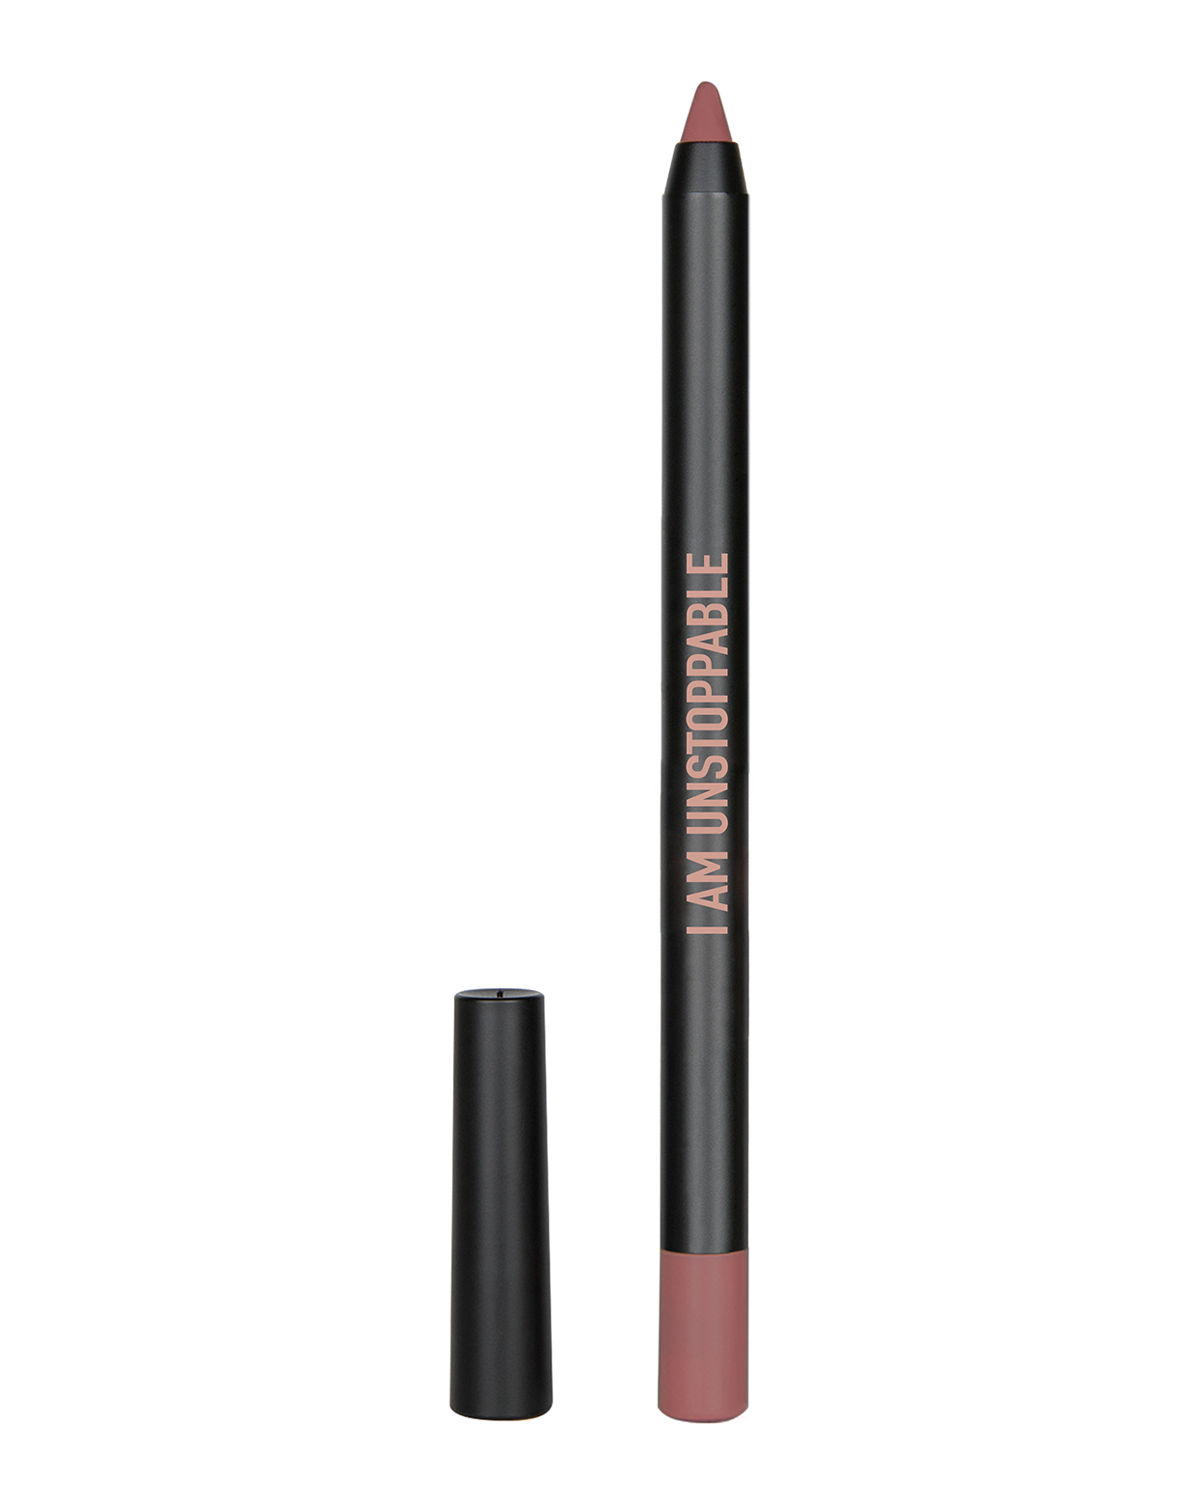 Realher Lip Liner Neiman Marcus Crayola Colored Pencils Long Isi 24